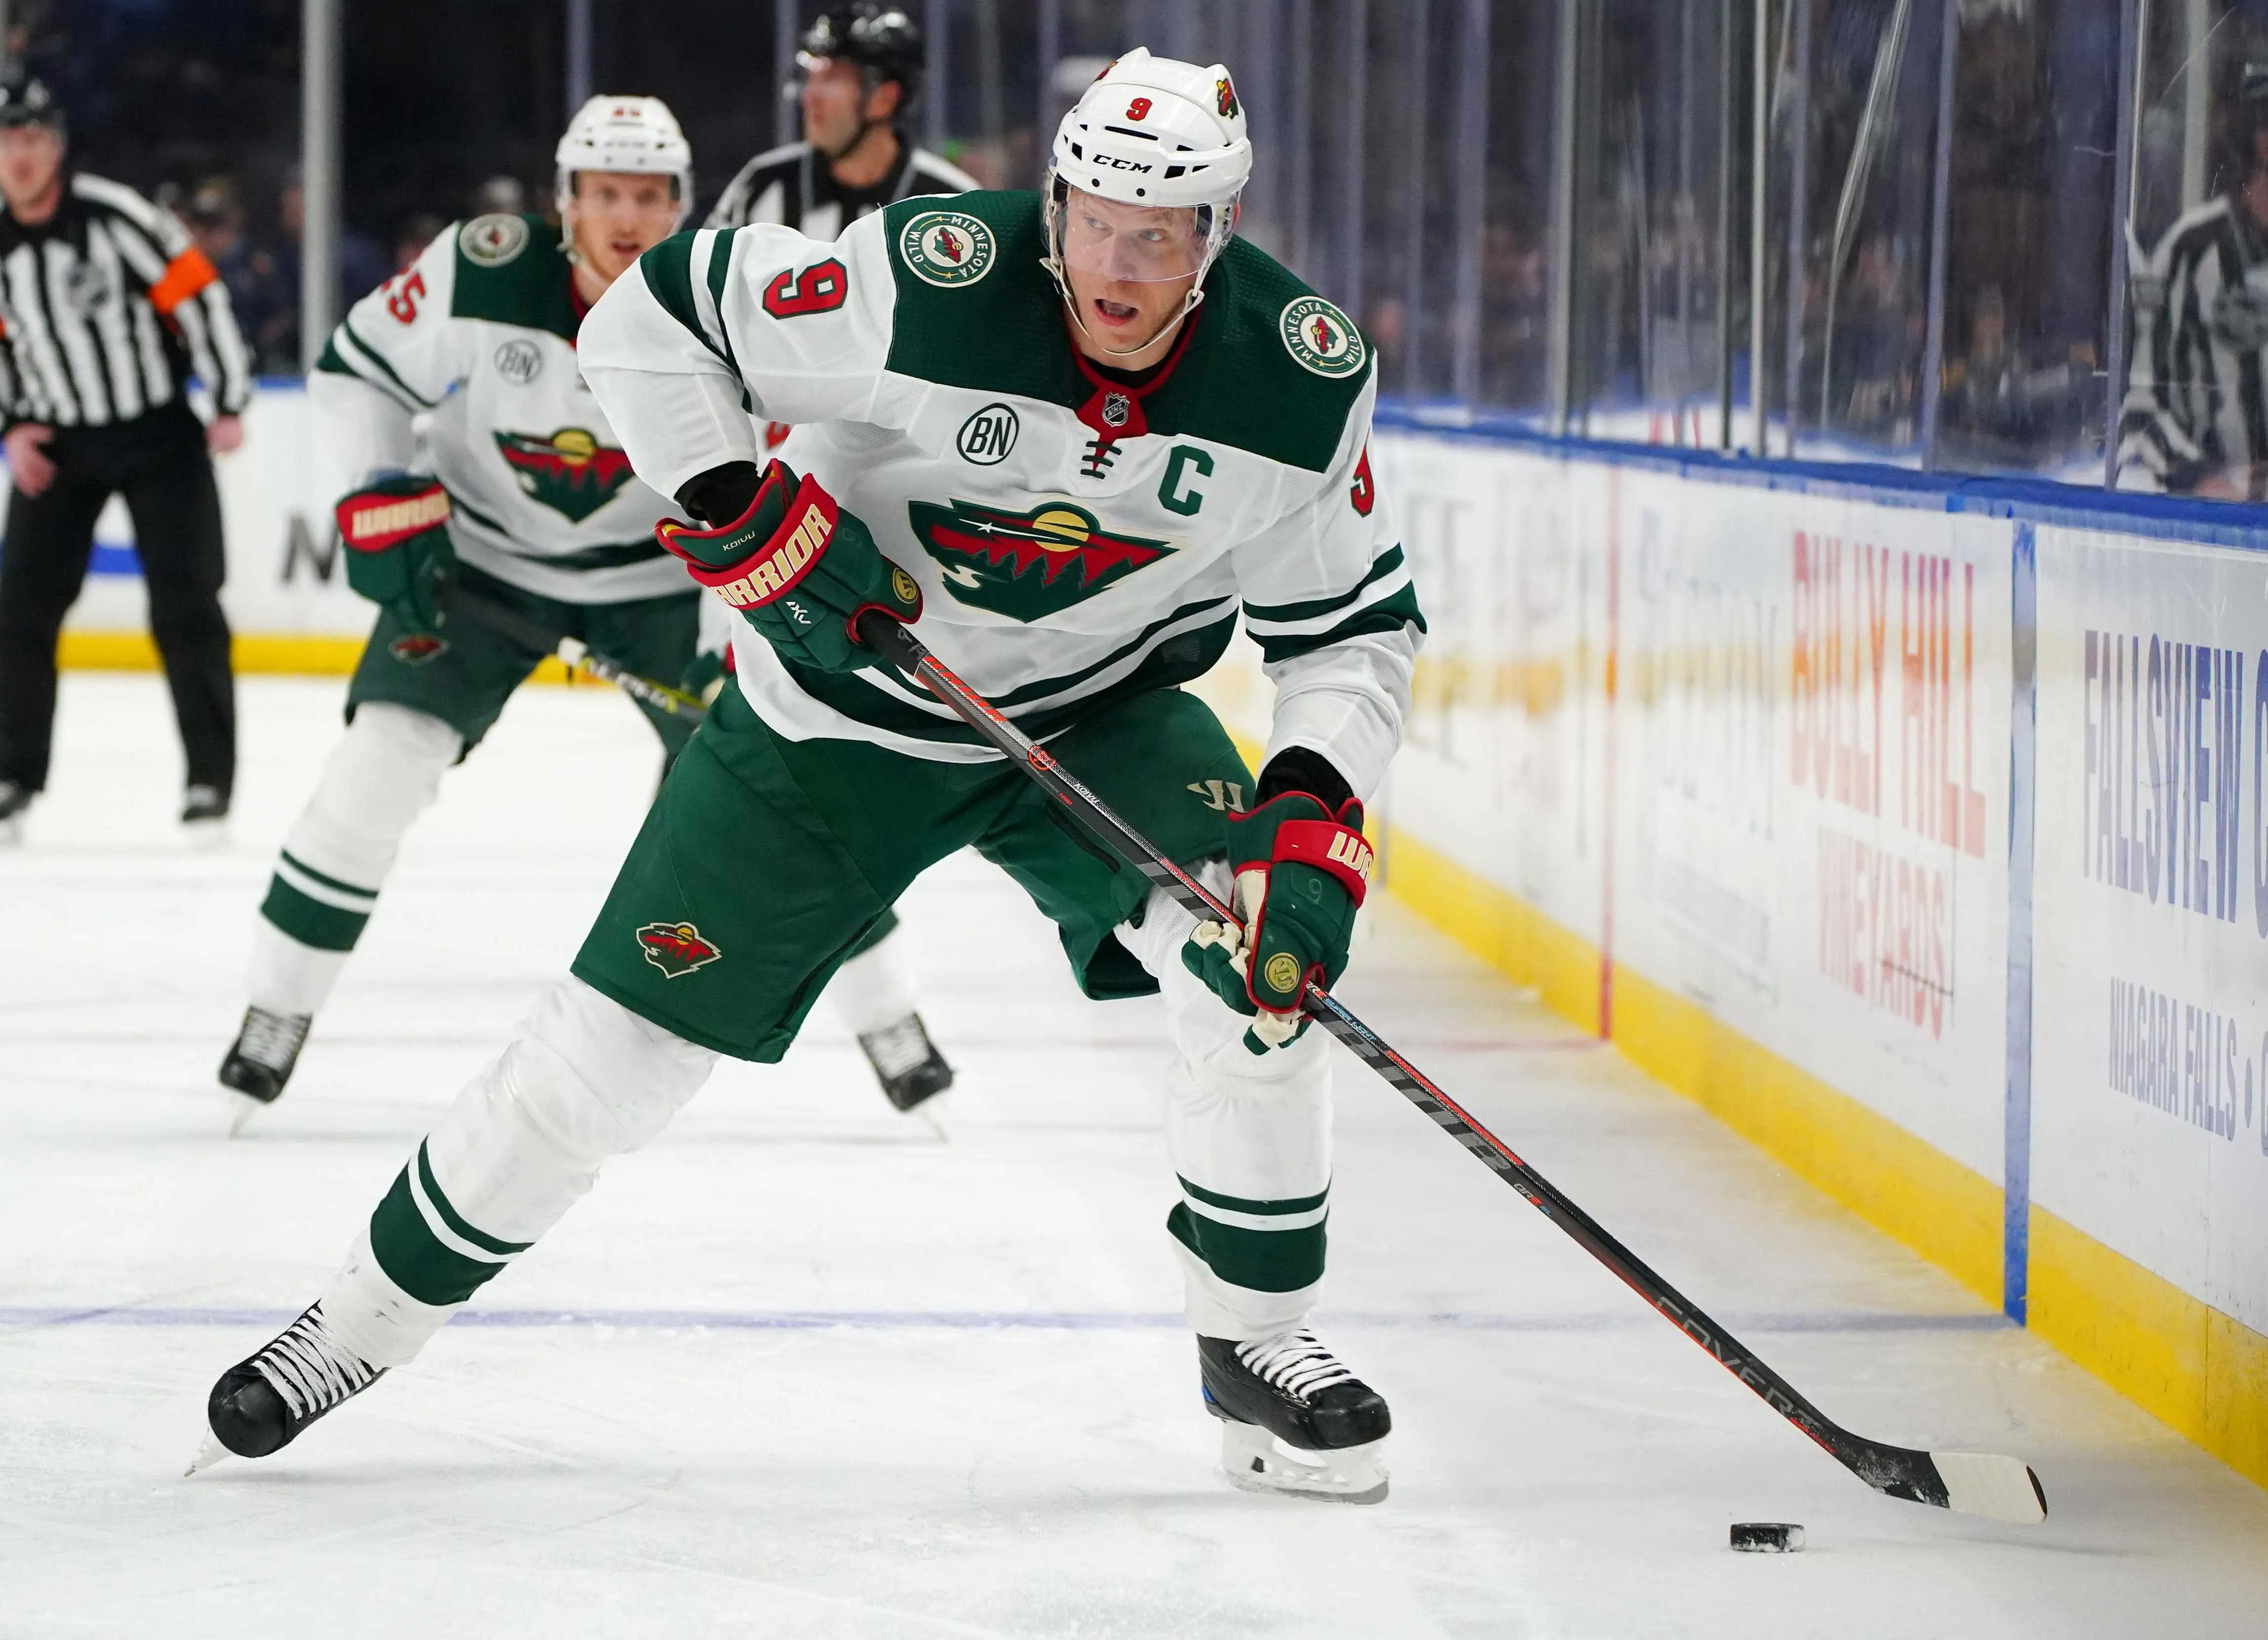 Mikko Koivu Wild Captain Out For Rest Of Nhl Season With